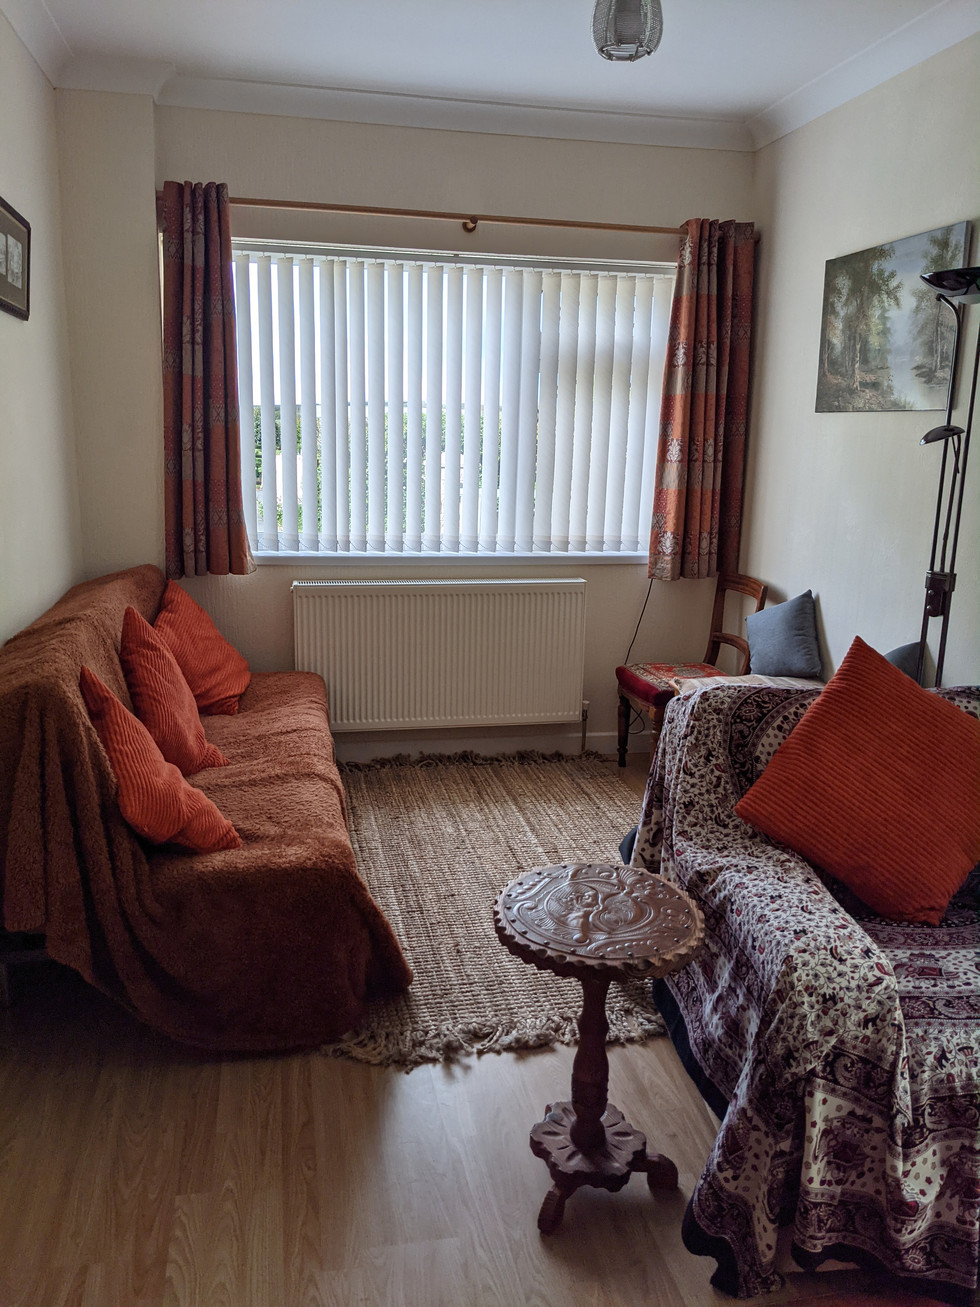 Extra living room space with bed settee if required.